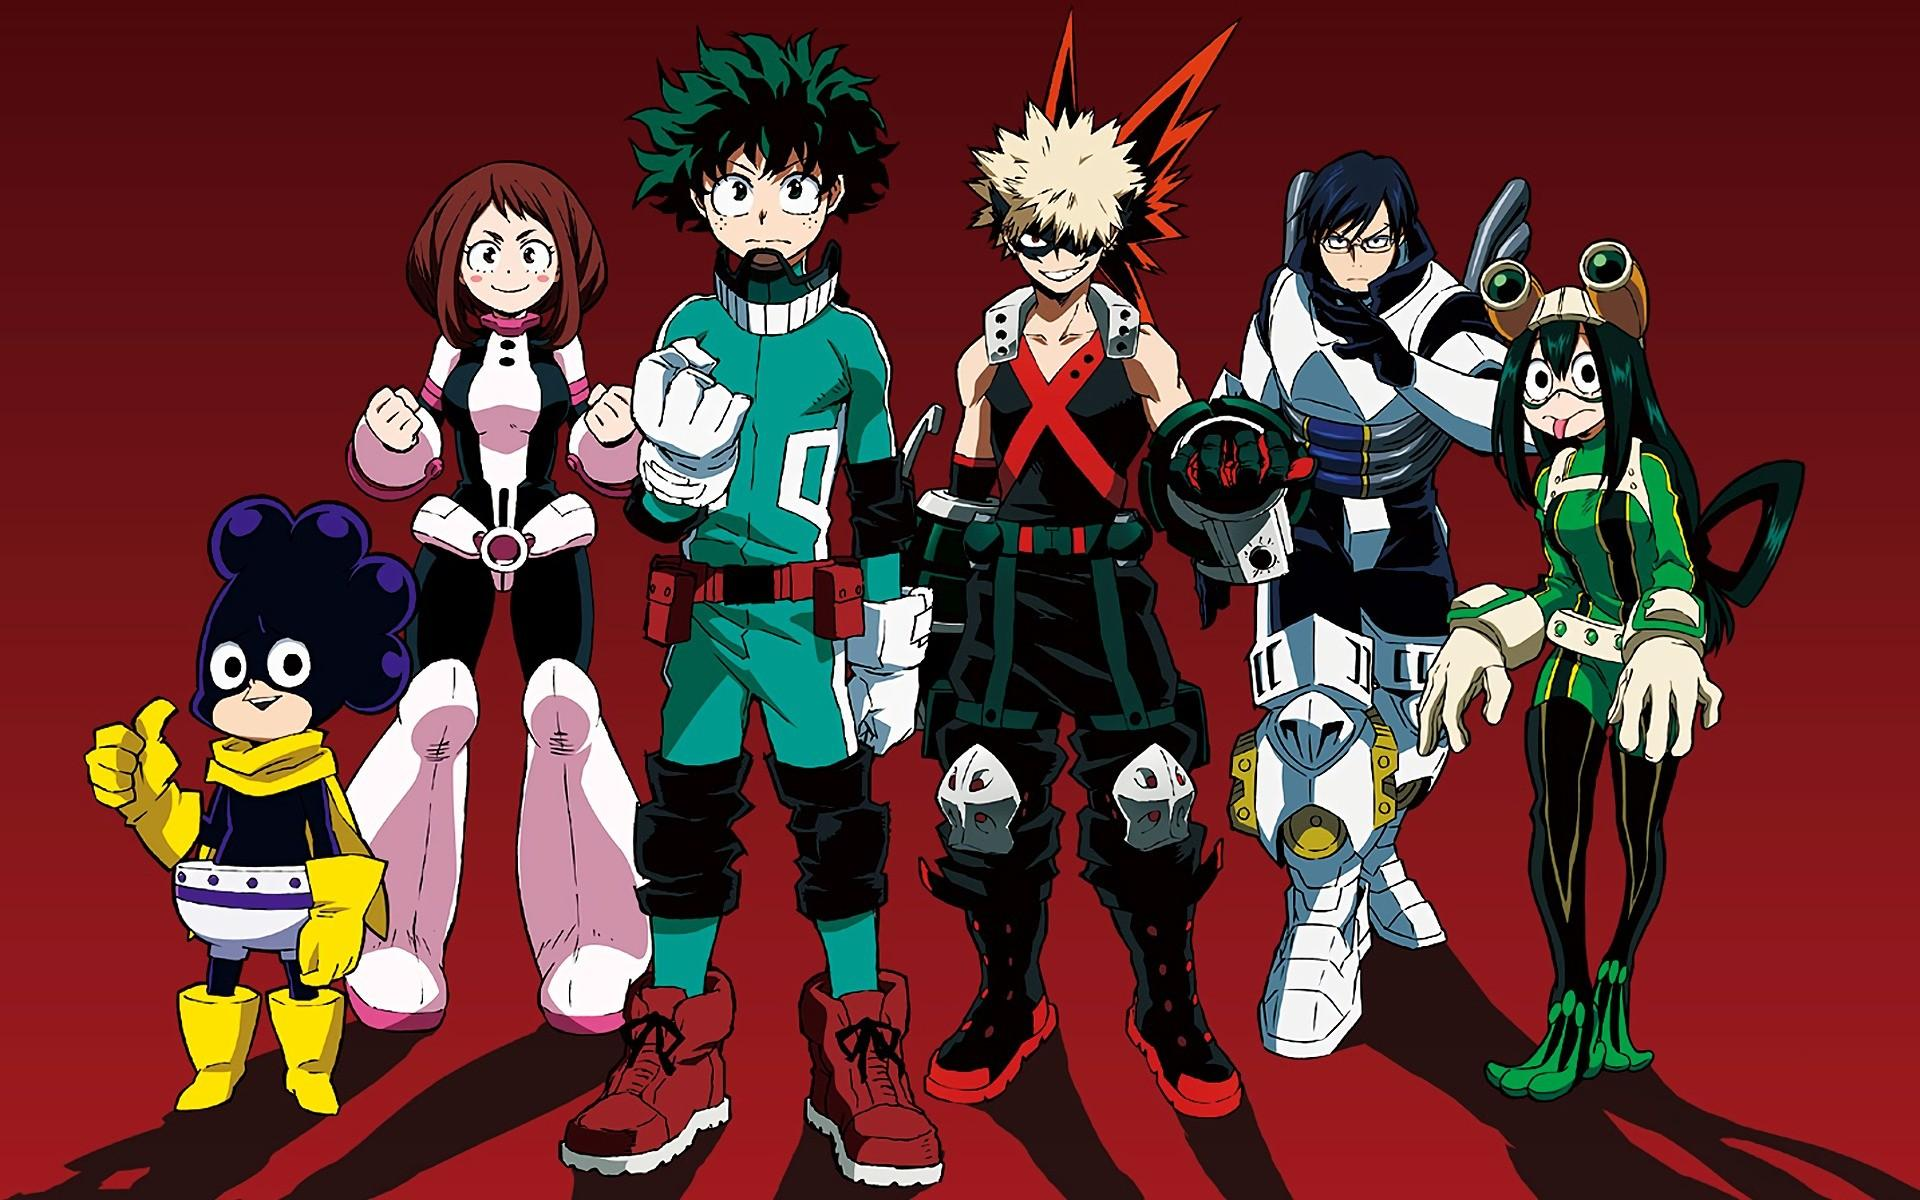 See the handpicked my hero academia wallpaper deku images and share with your frends and social sites. Villain Deku Wallpapers - Wallpaper Cave